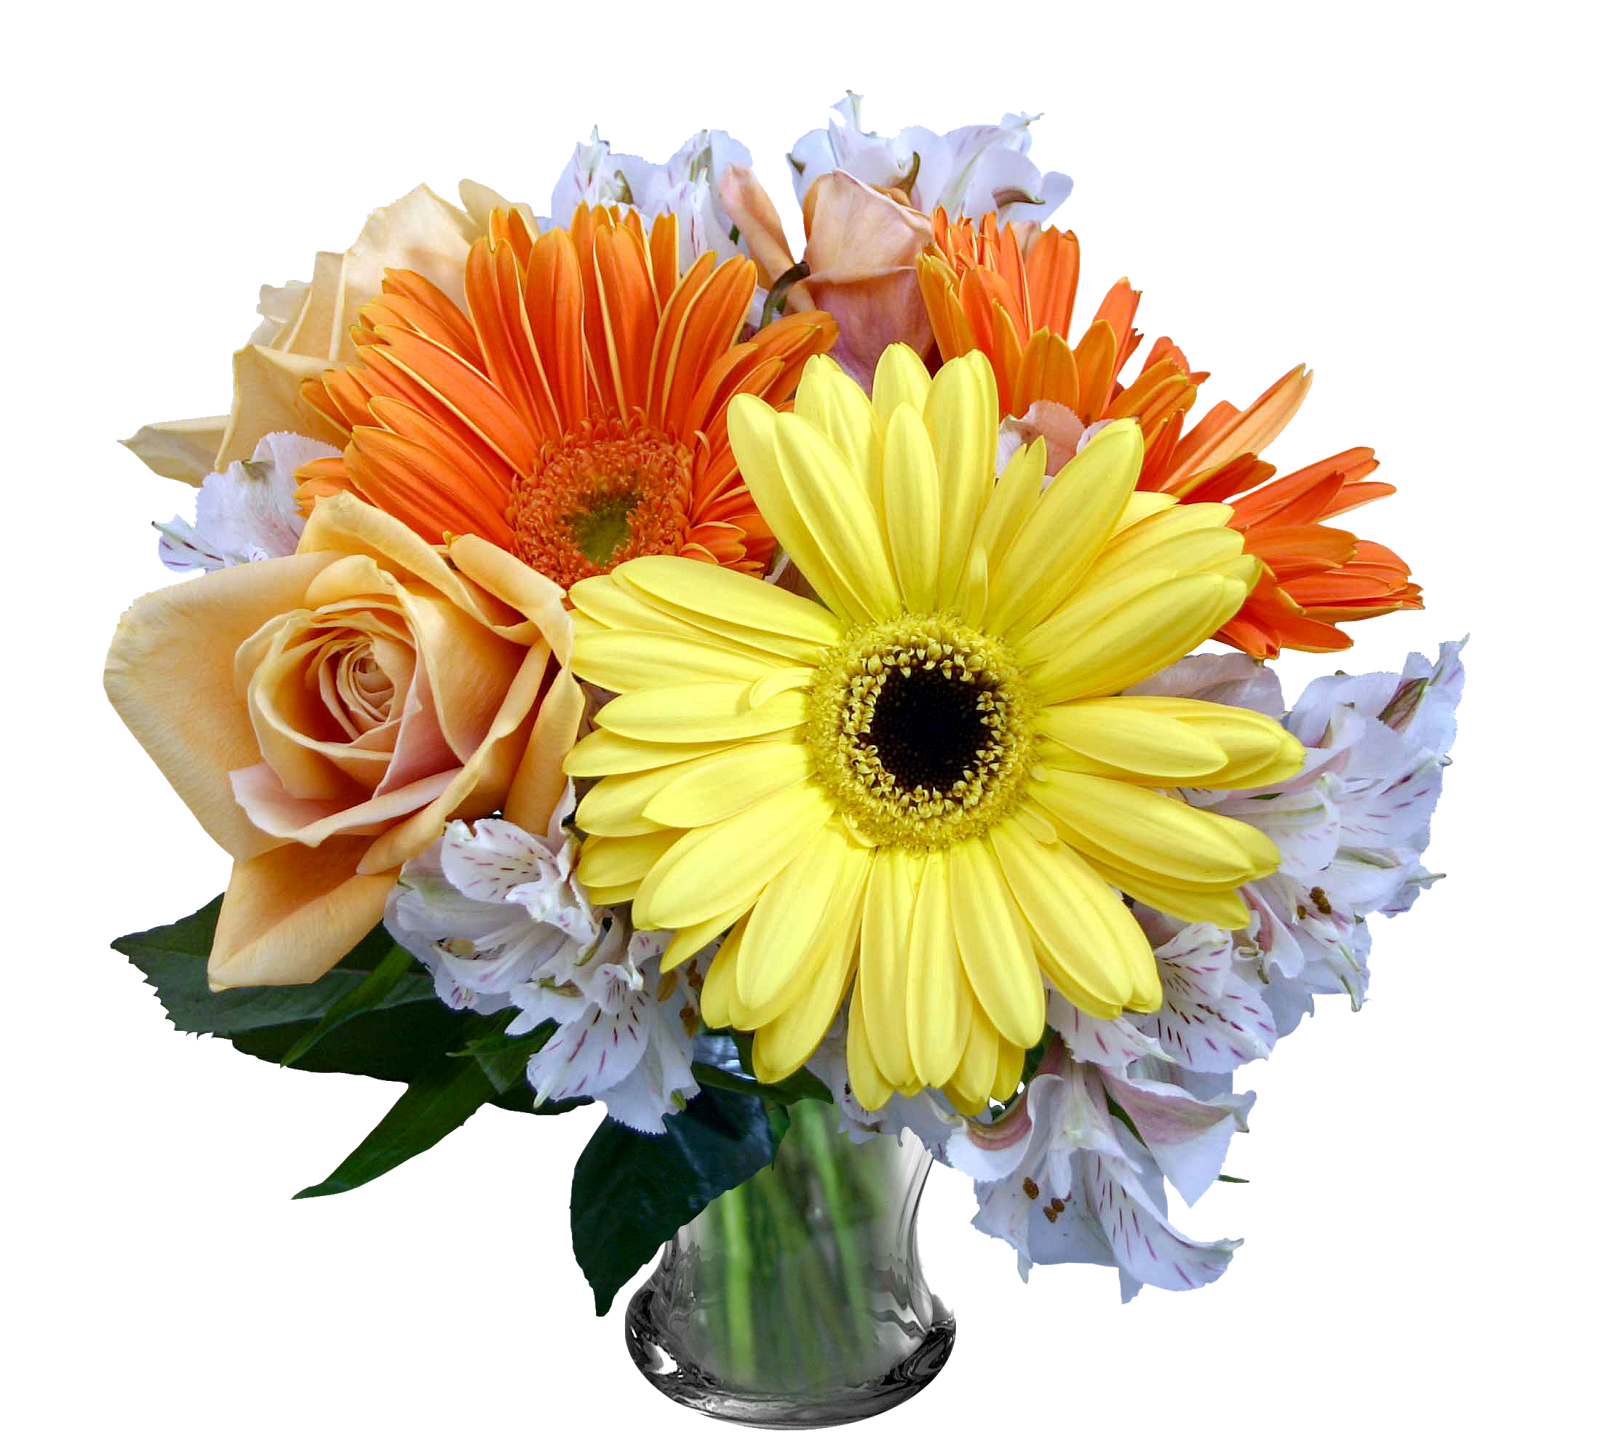 Free download images of flowers free Flowers Free Download Transparent - 18197 - TransparentPNG free